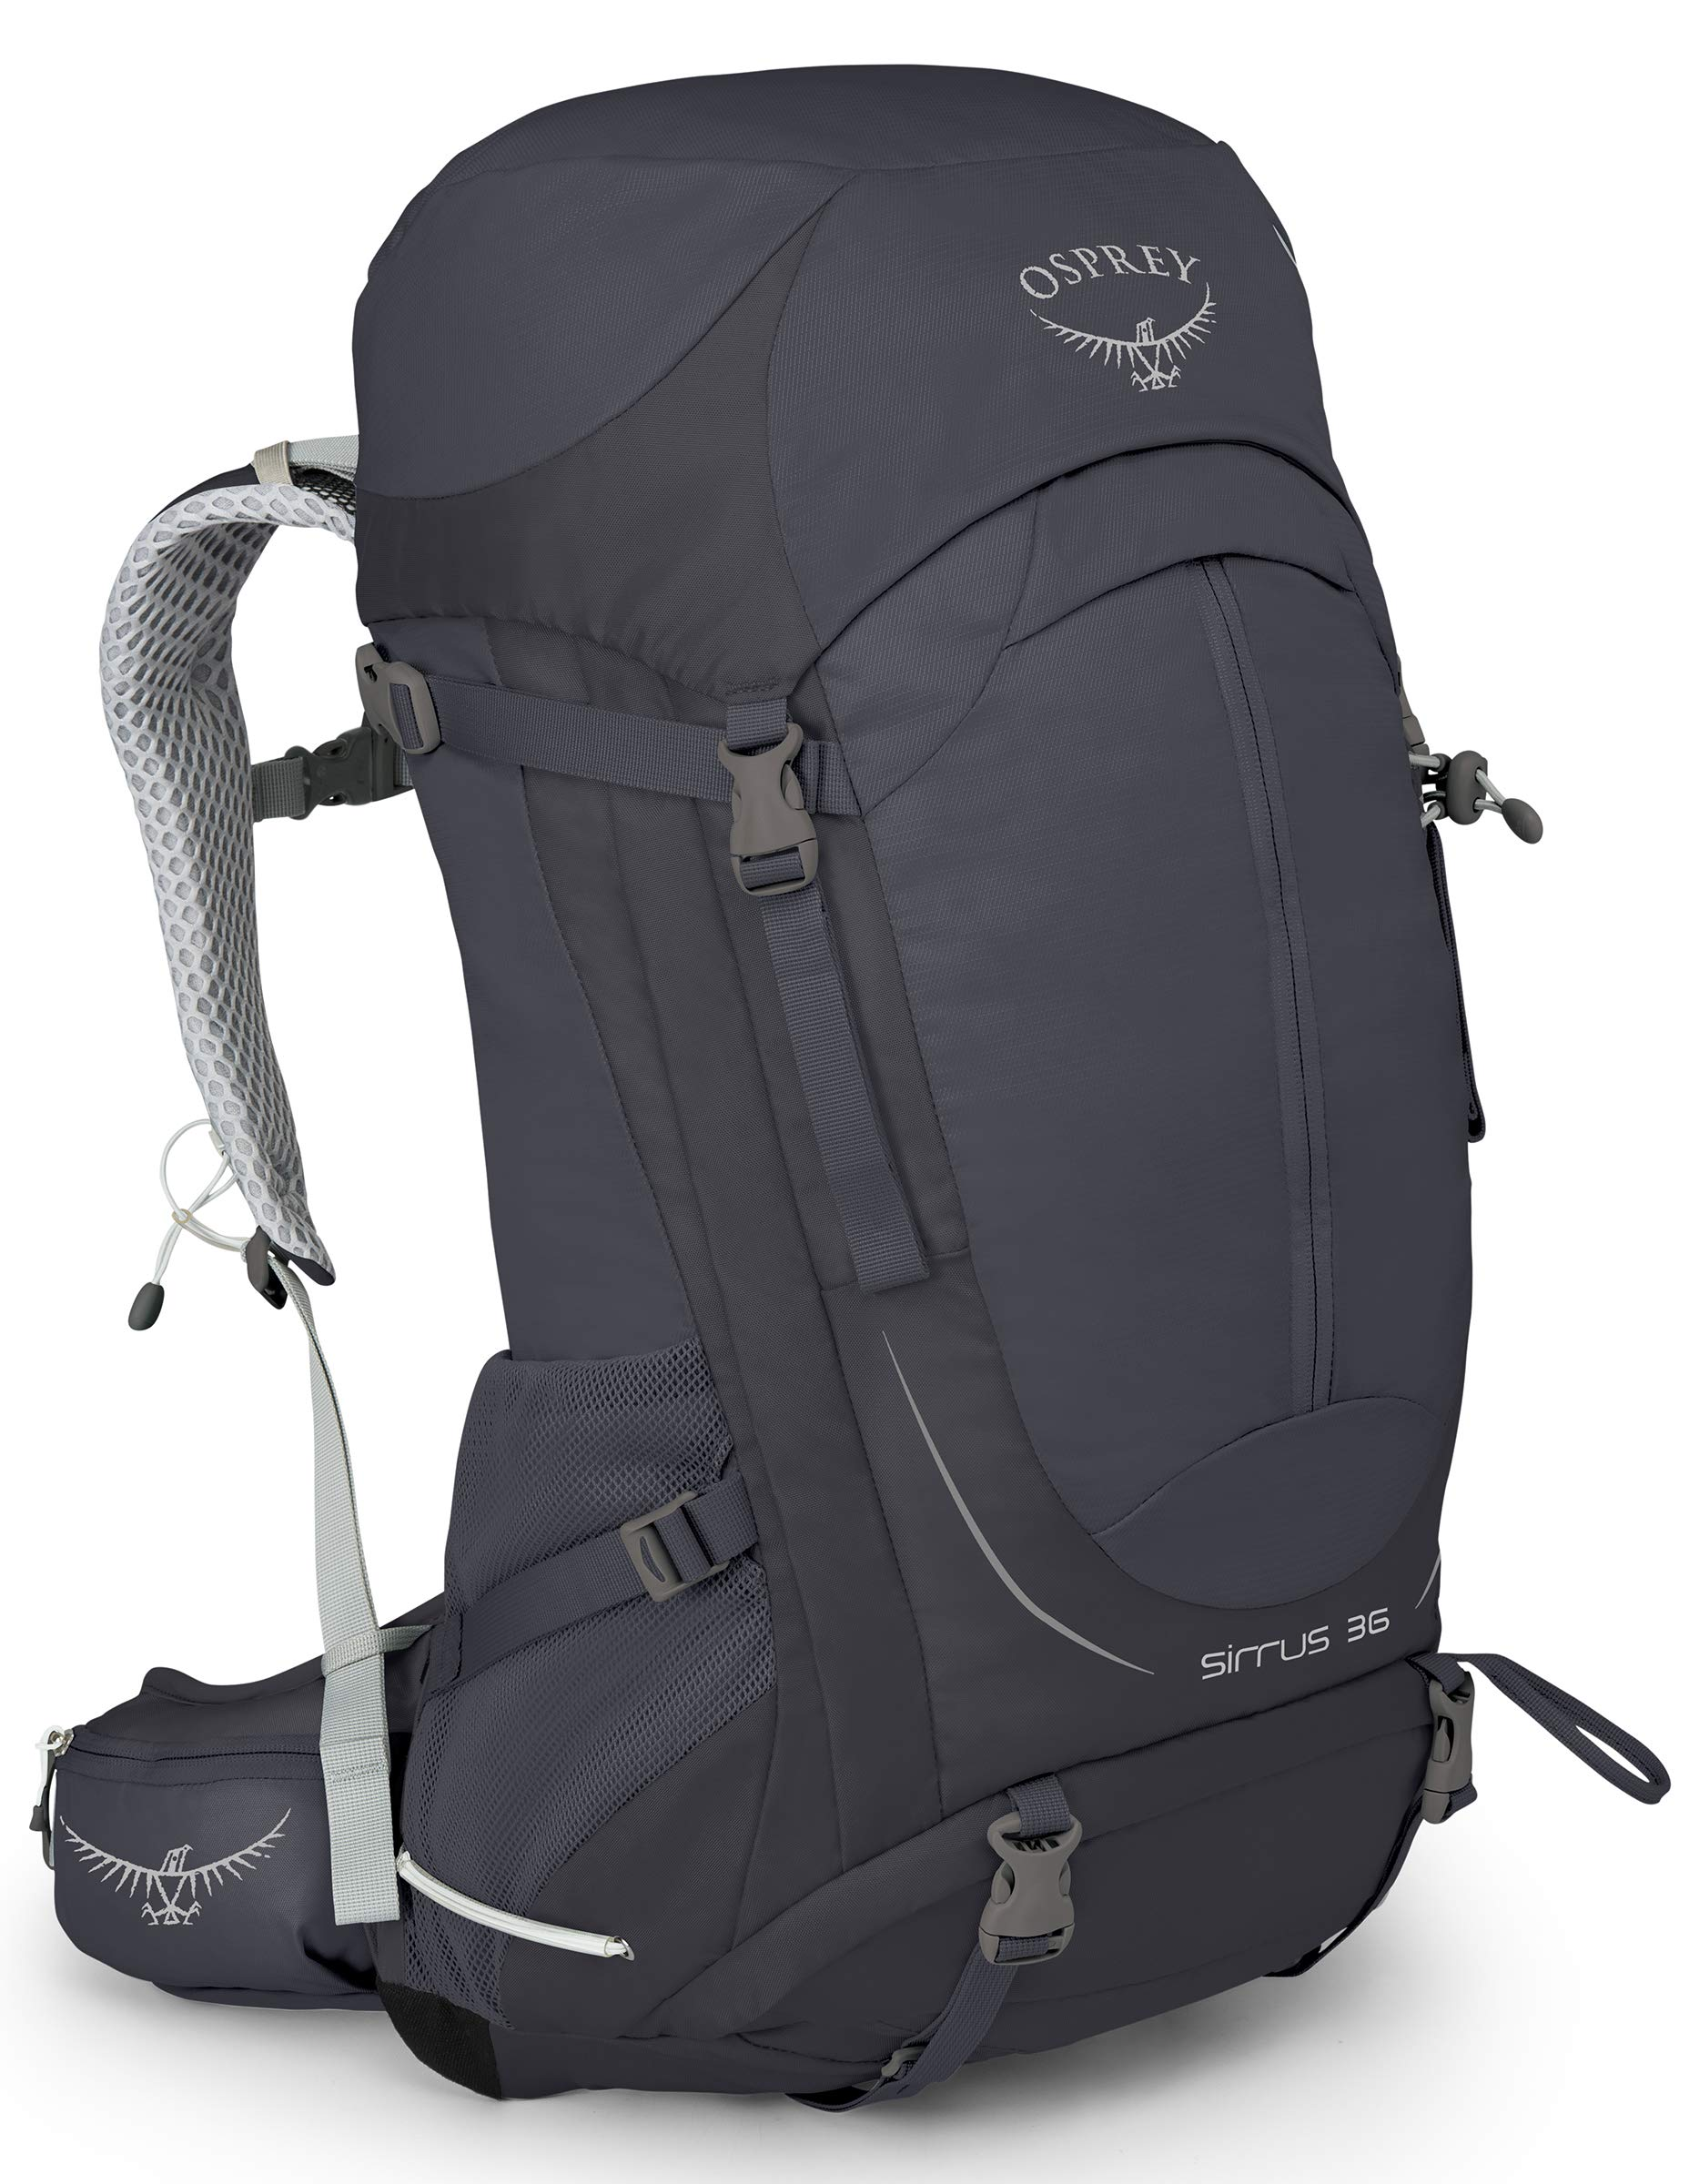 Osprey Packs Sirrus 36 Hiking Backpack, Oracle Grey, X-Small/Small